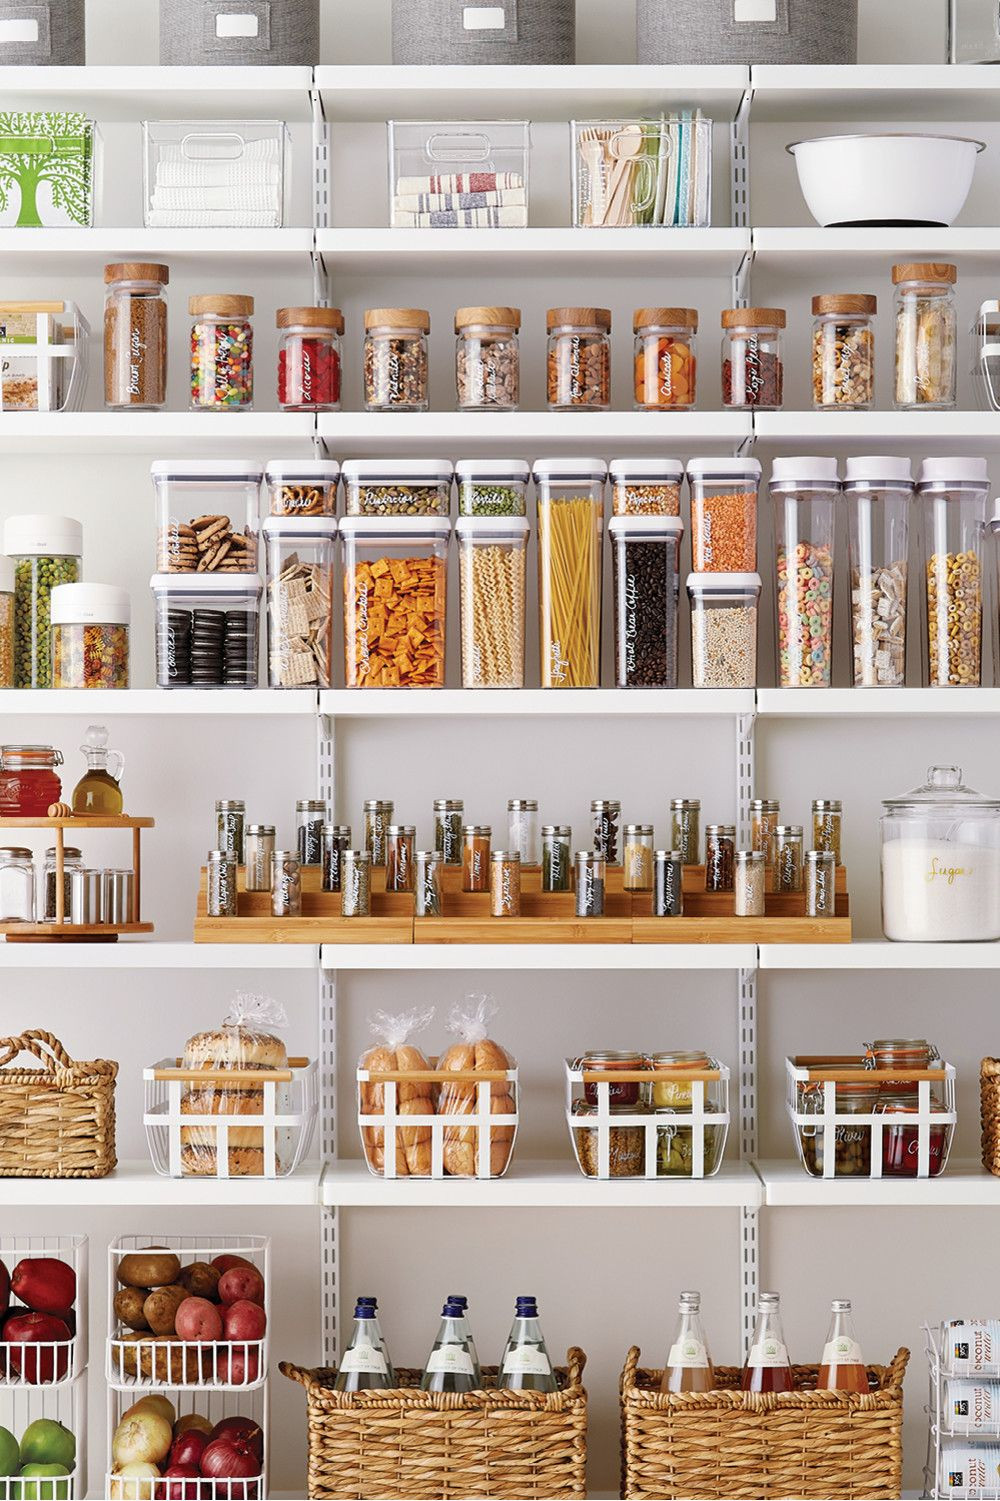 Best ideas about Pantry Storage Containers . Save or Pin Kitchen Refresh Pantry let s organized Now.